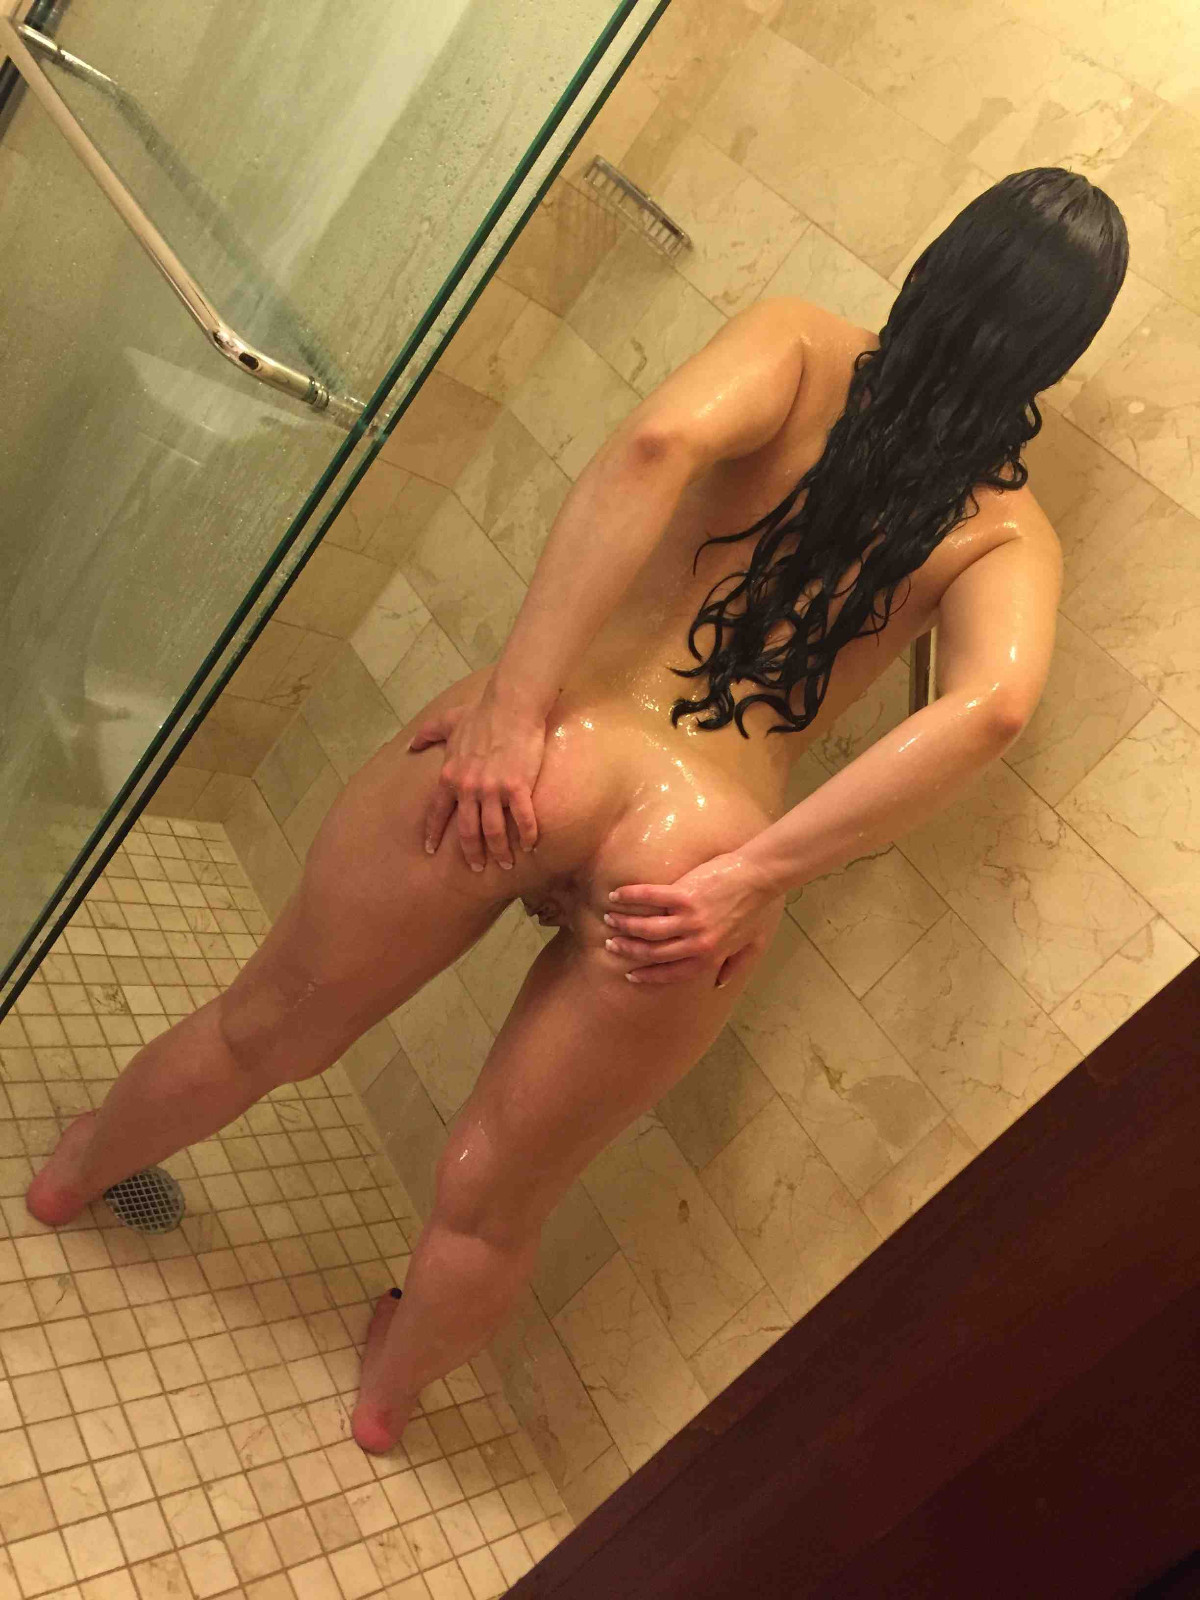 😍★★=best girl ❤❤ arrived today ❤=❤=❤=❤ vip services ❤😍6104269120 - 23